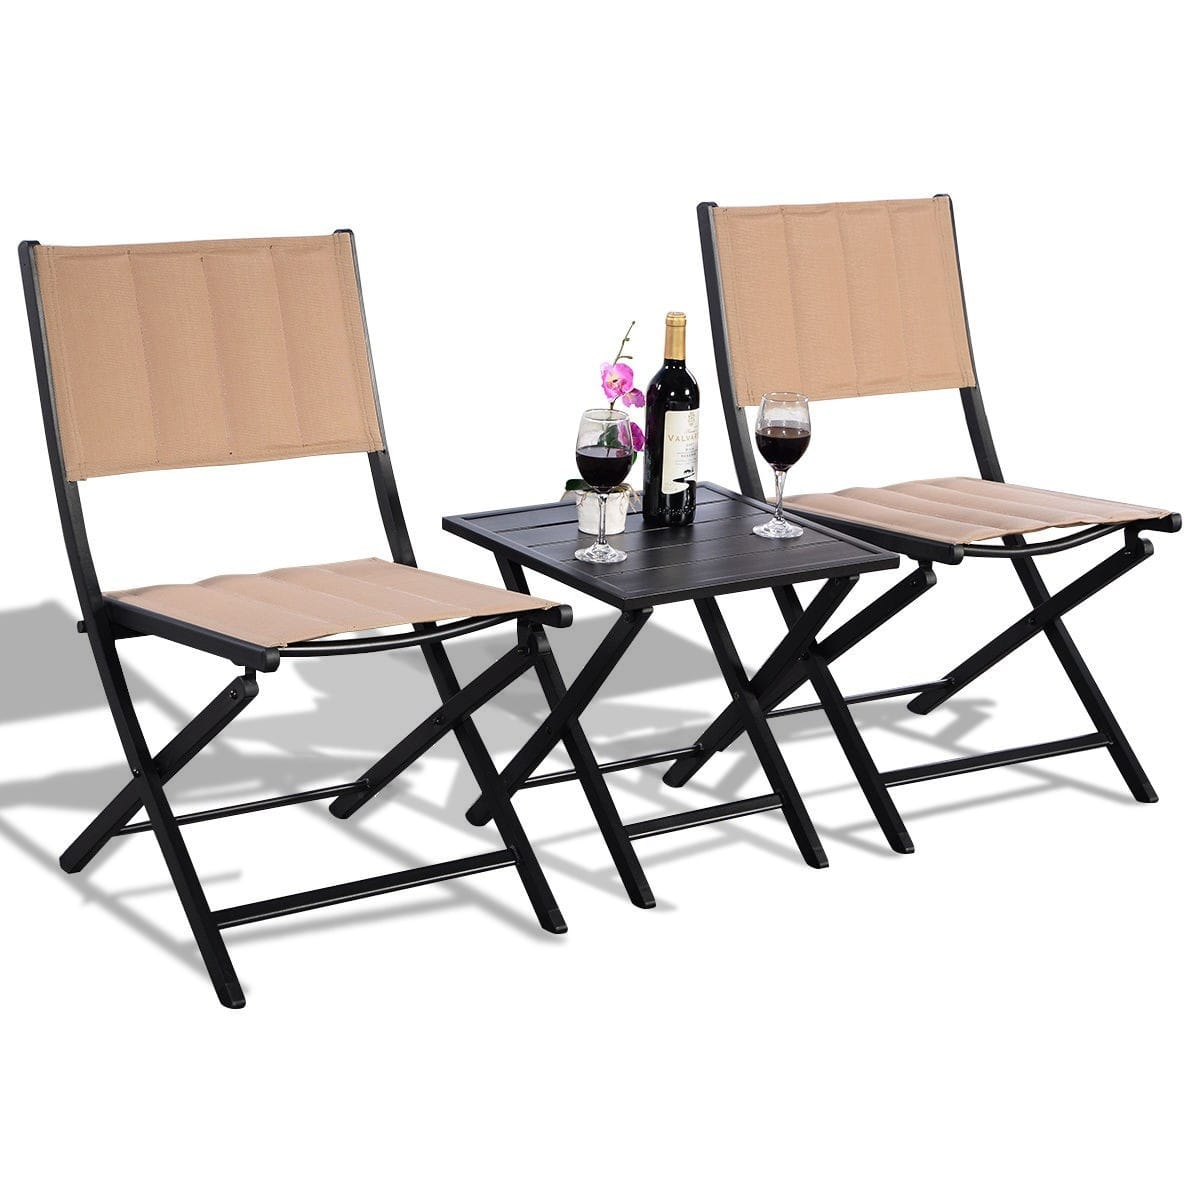 Costway Clearance 3-Piece Folding Bistro Outdoor Table Chairs Set $43.95 + FS